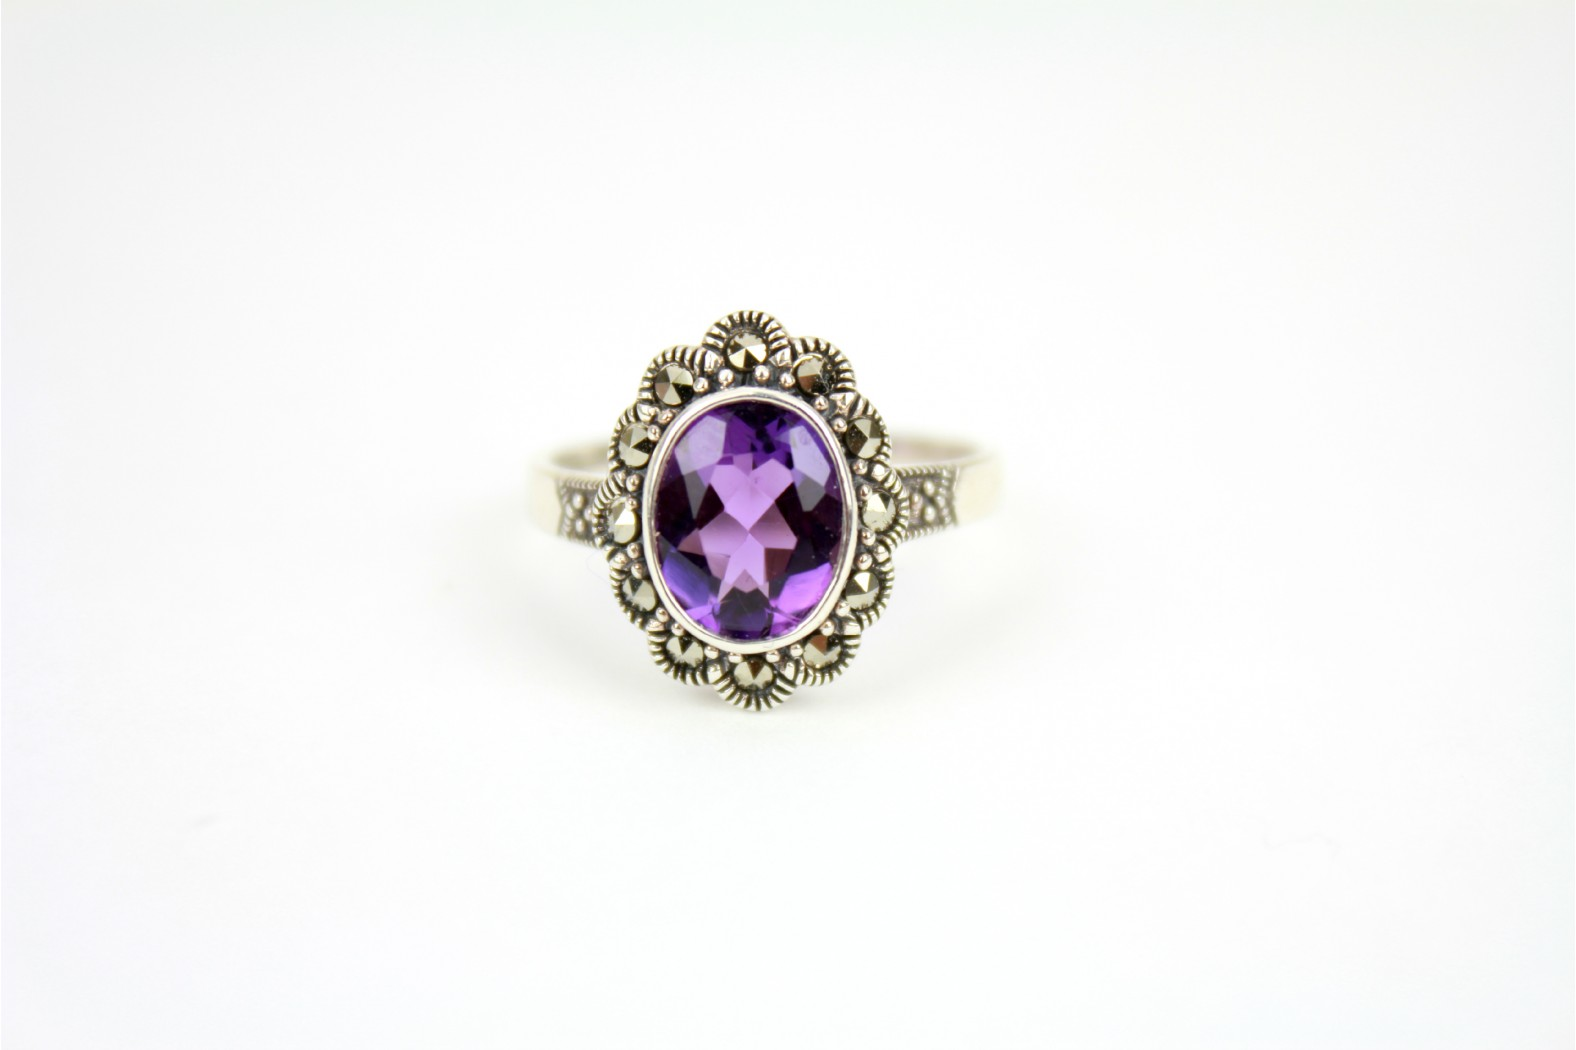 Beautiful oval shaped faceted Amethyst surrounded with Marcasite stones size 9 or R